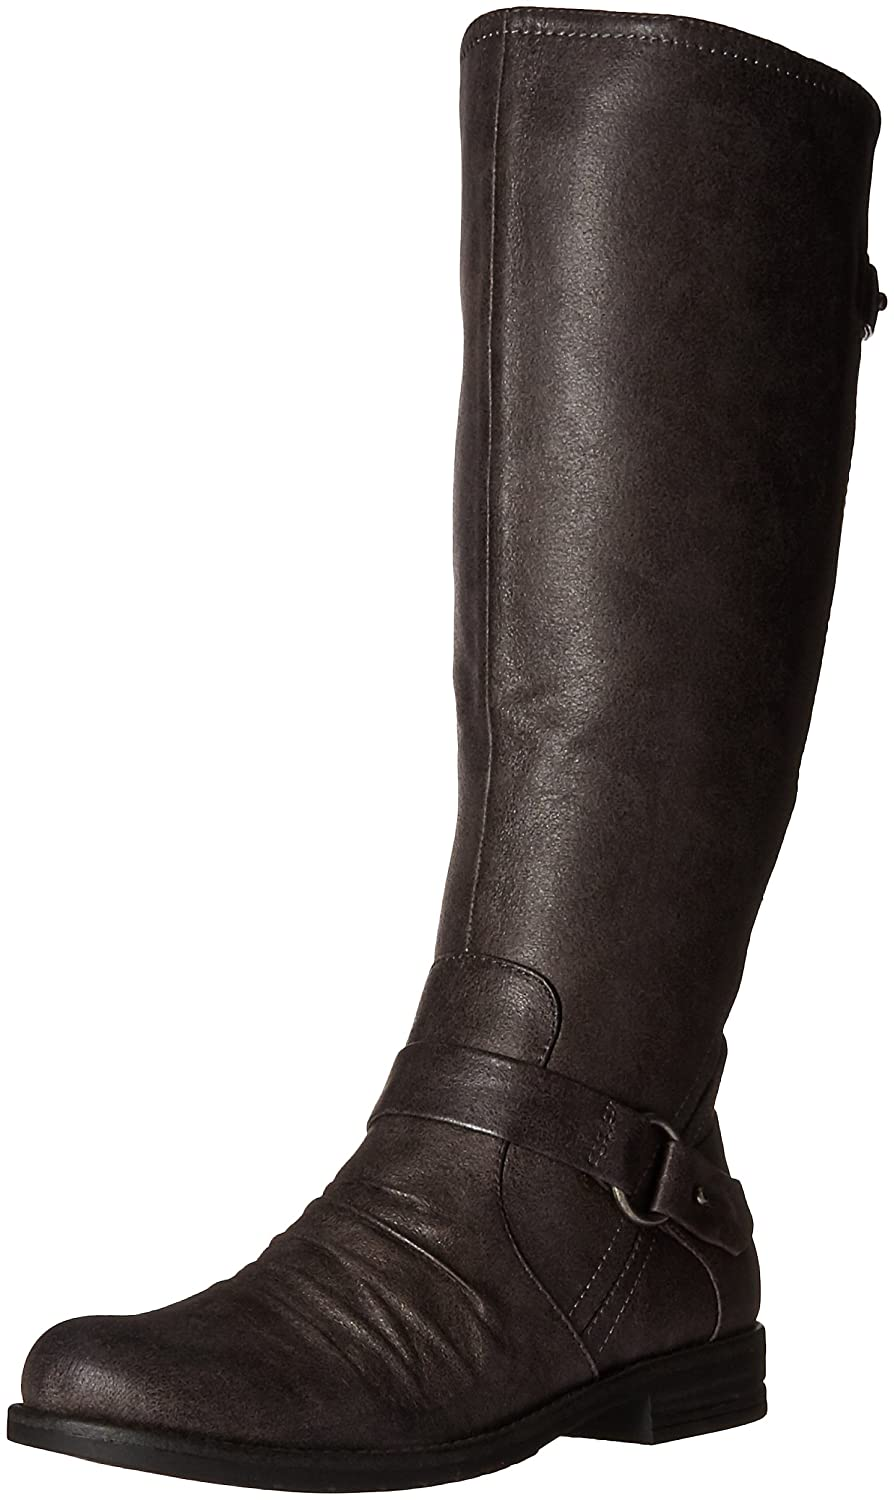 BareTraps Women's Bt Clancy Riding Boot B01DWOB16C 9.5 B(M) US|Dark Grey